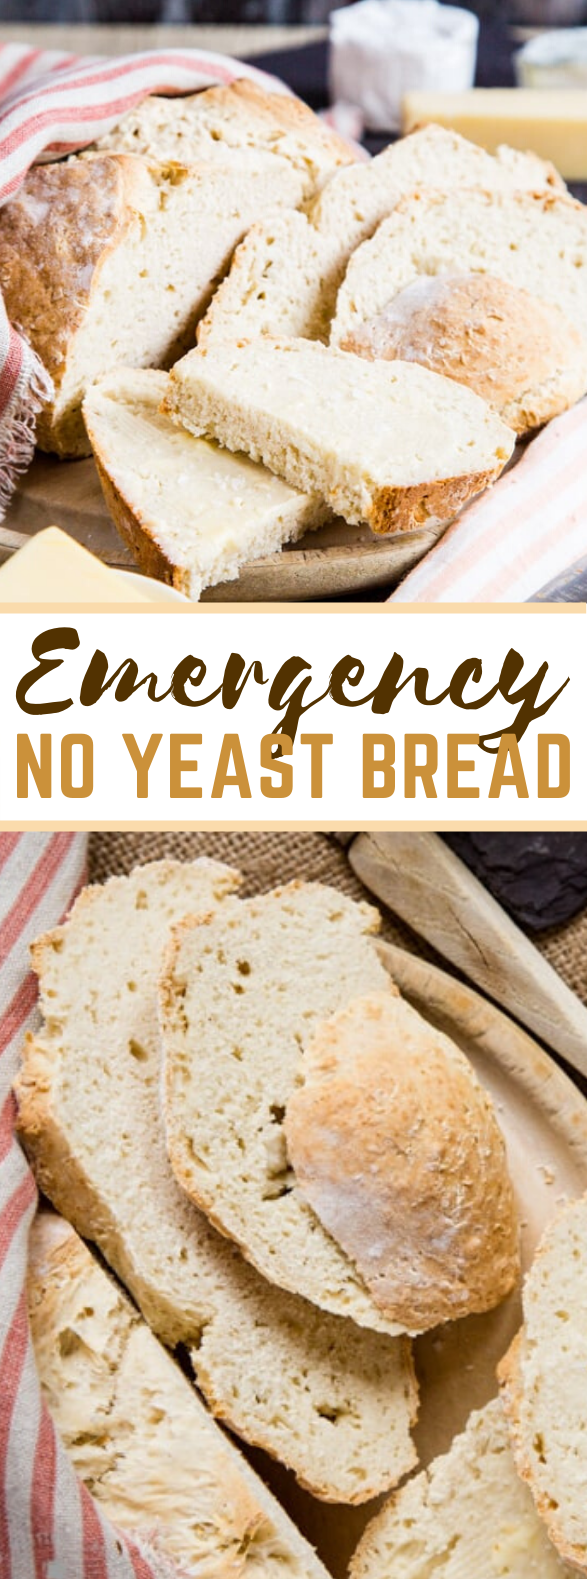 Emergency No Yeast Bread #meals #recipes